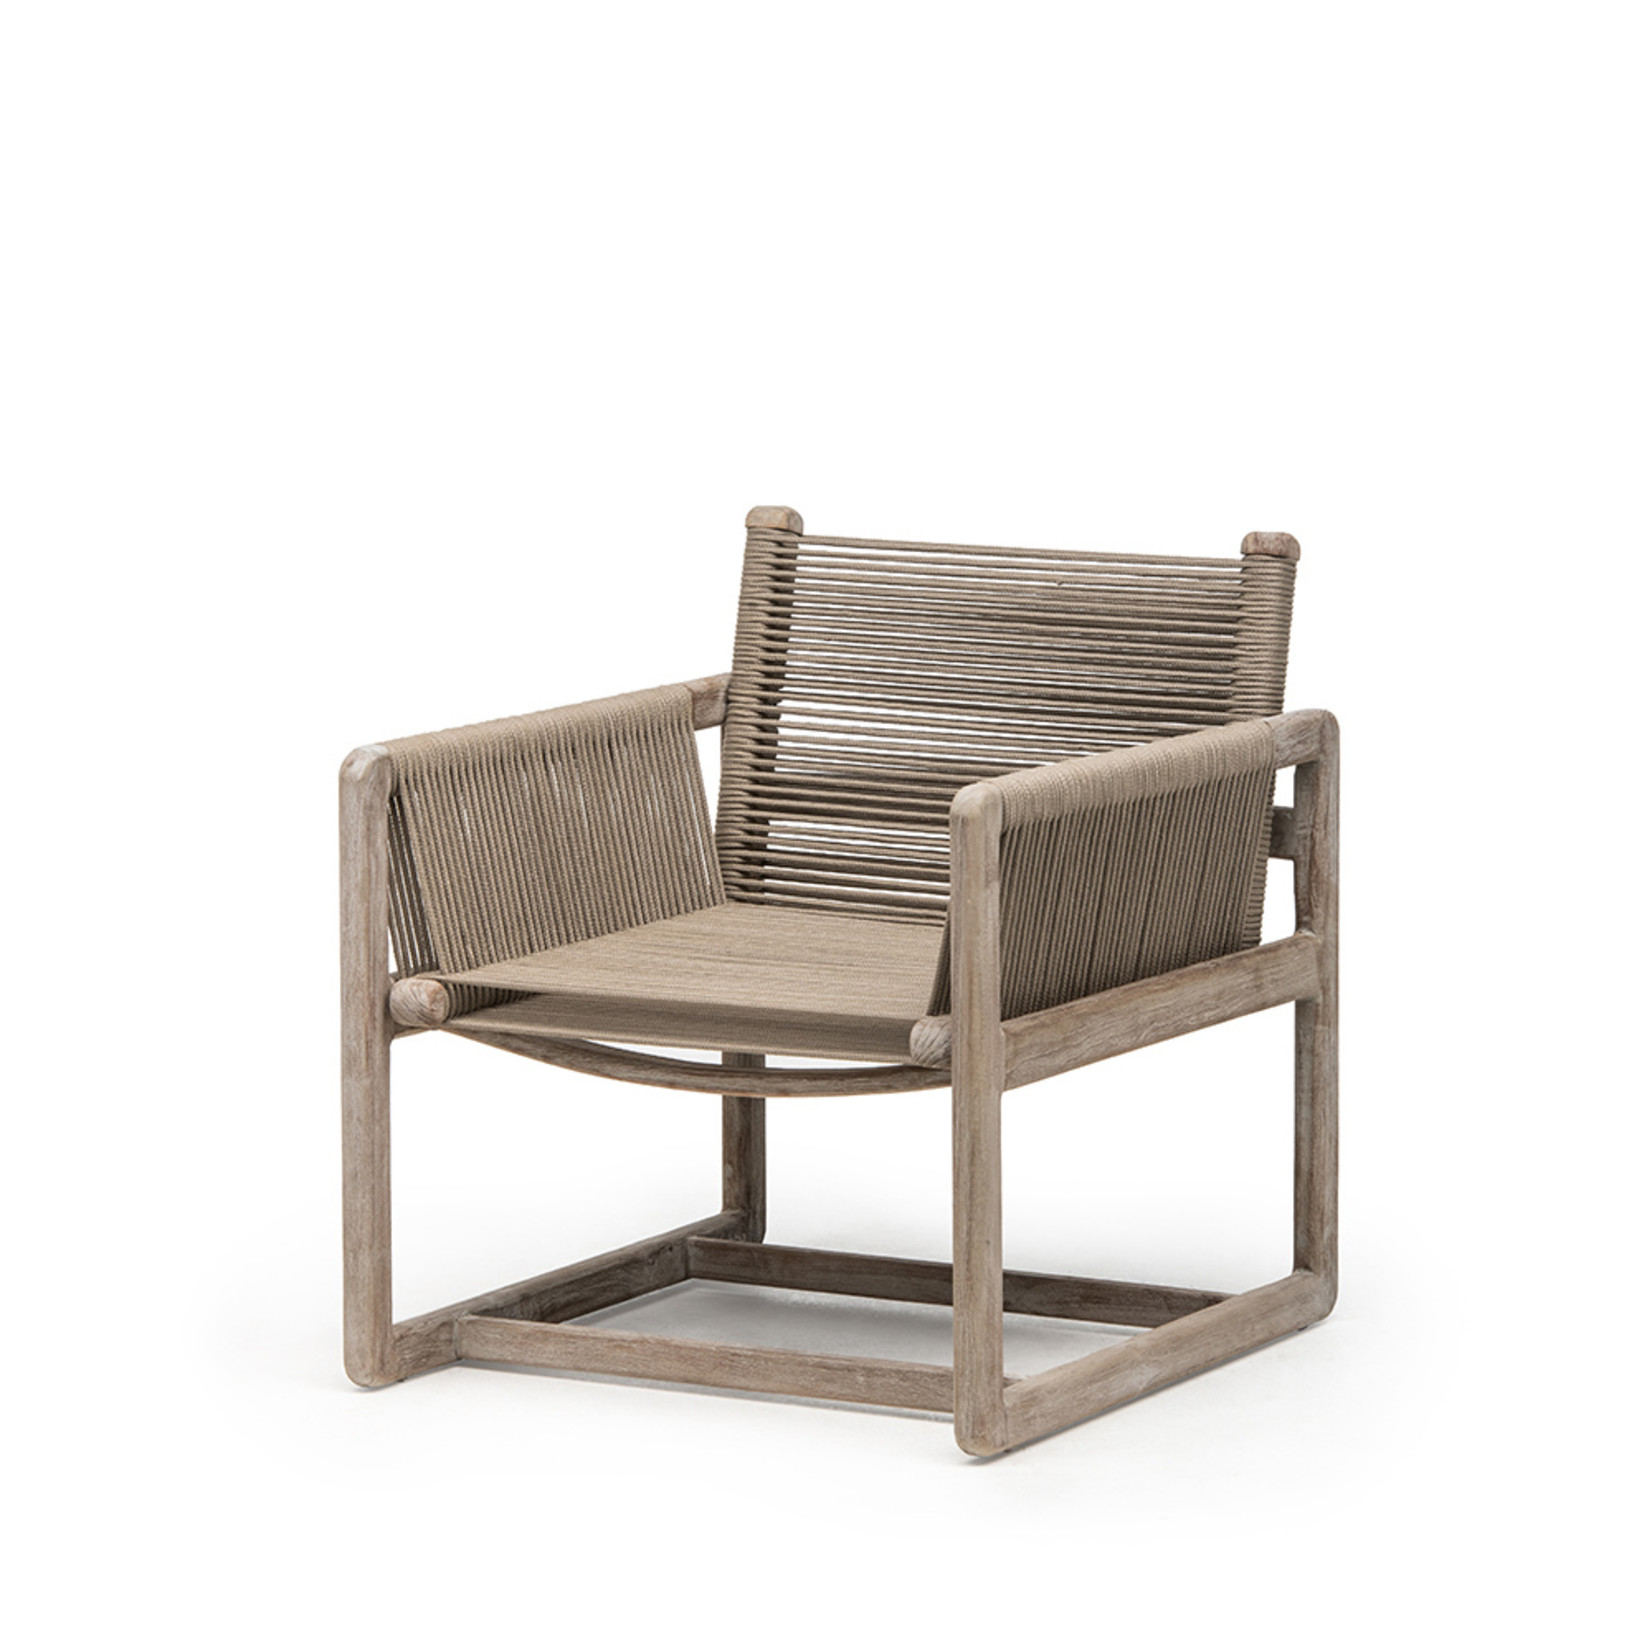 Gommaire Easy Chair Carlo | Teak Natural Gray / Rope